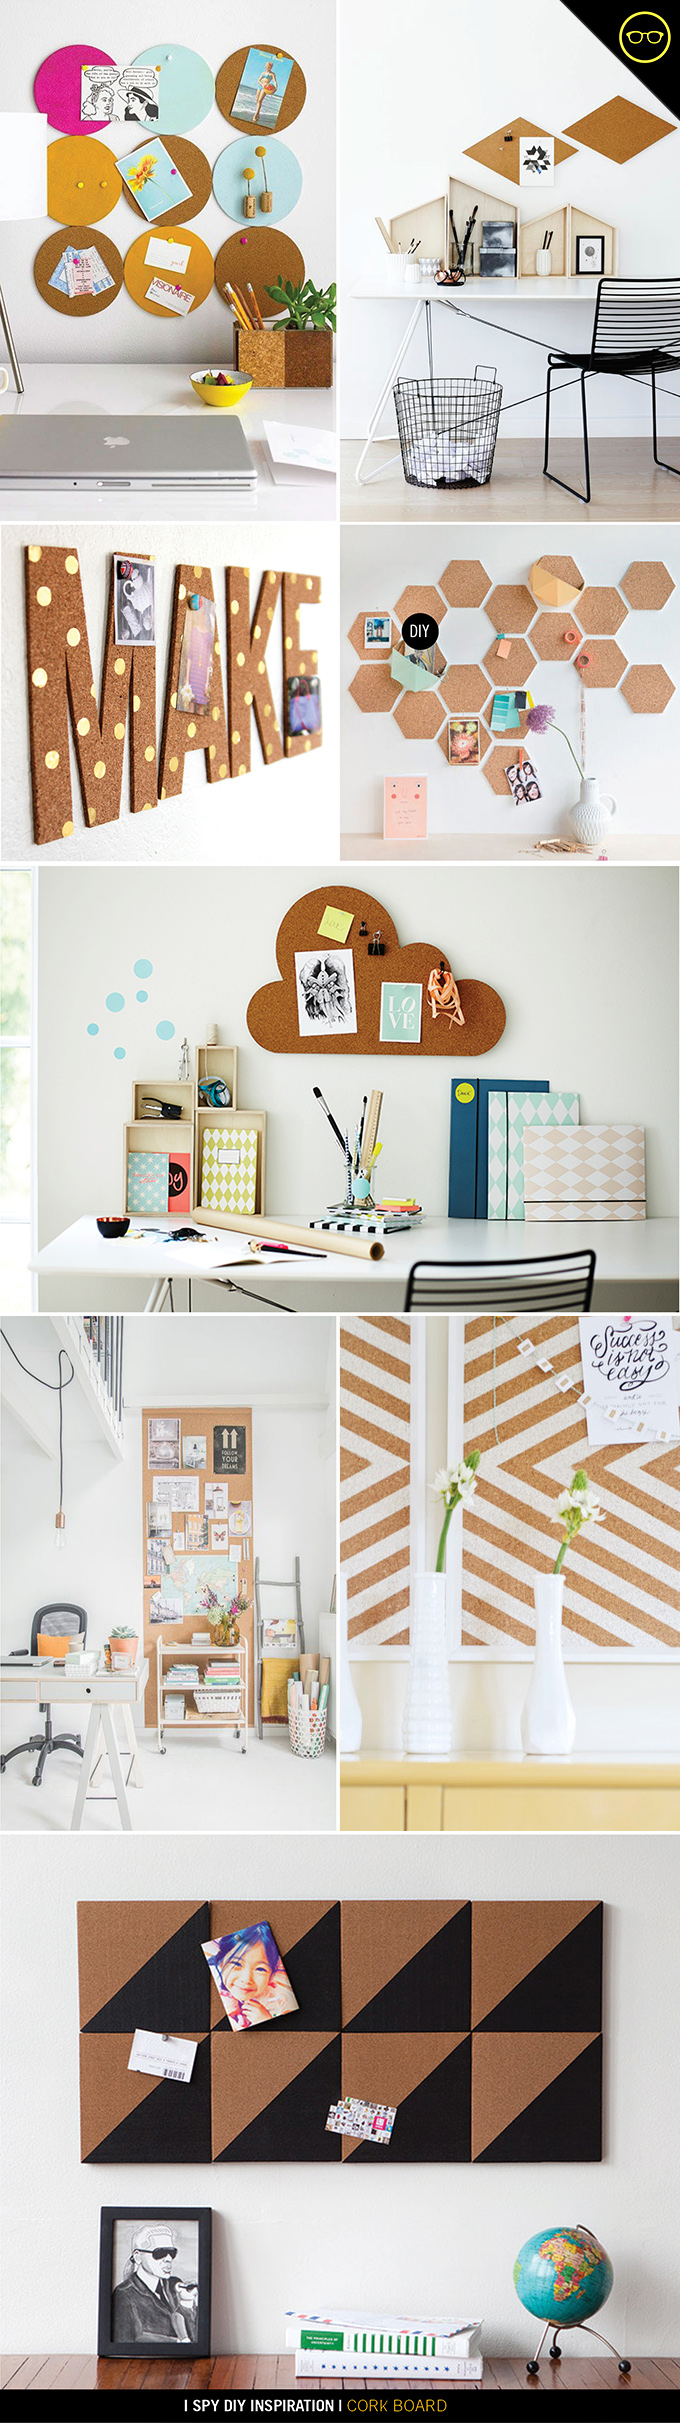 INSPIRATION Cork Boards I Spy DIY Bloglovin